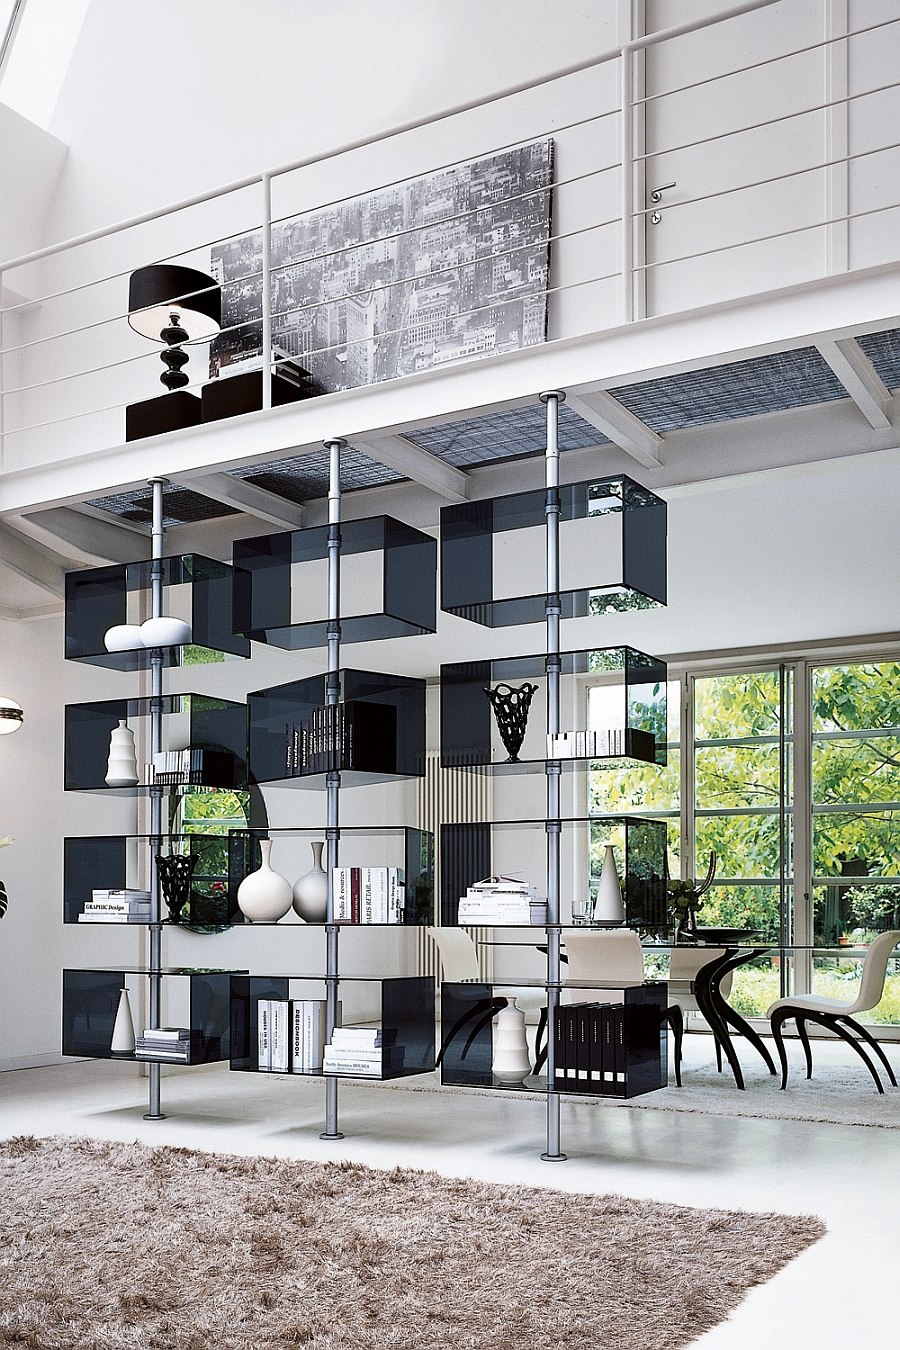 Captivating wall unit steals the show with its clever design